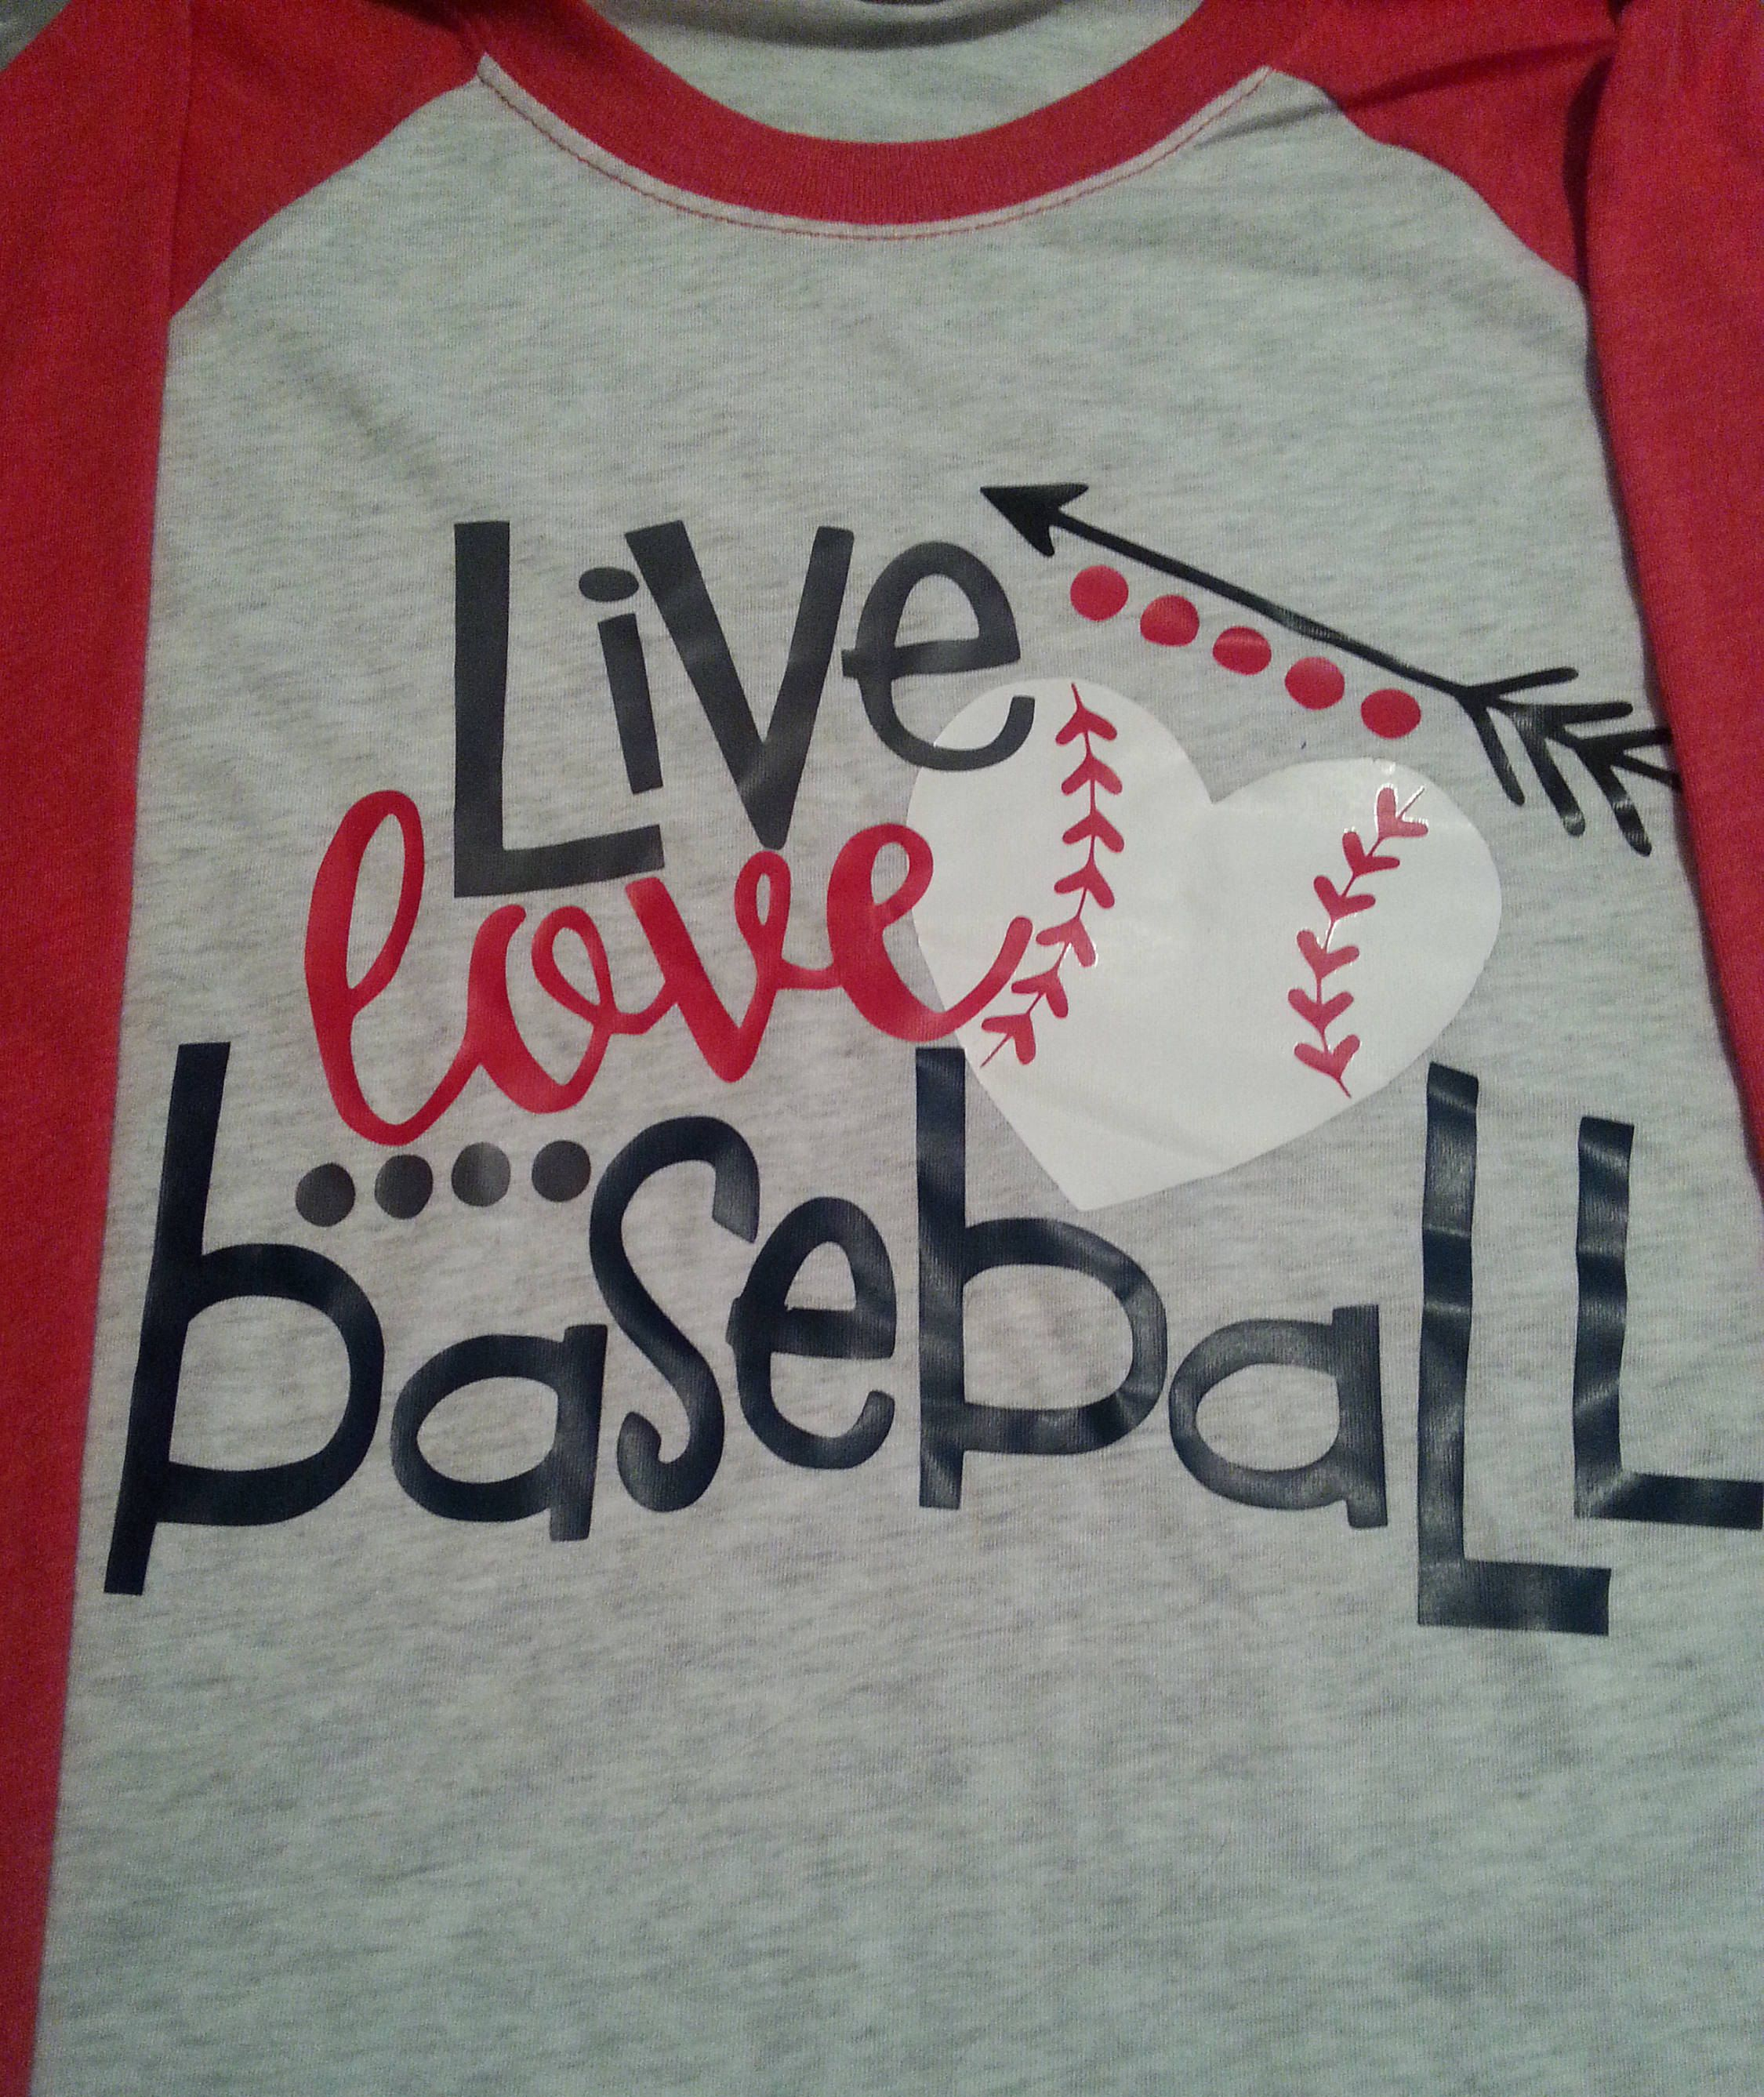 e1880caee91 Live Love Baseball Shirt Baseball Mom Baseball raglan Plus size raglan  Youth Baseball Shirts Customm Baseball Shirt Ballfield Shirt by  SimplySweetJBoutique ...